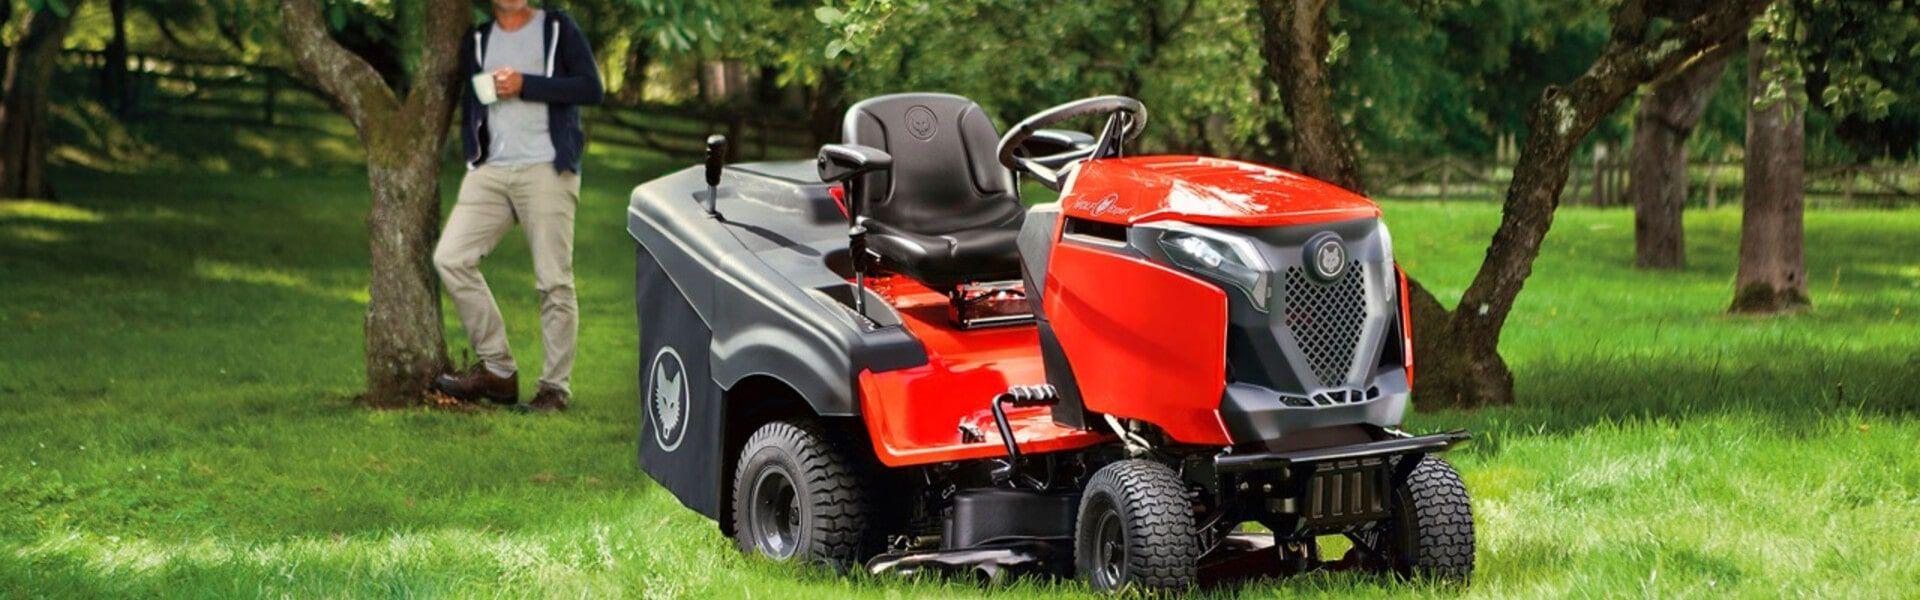 Best Lawn Mowers in 2020 (Buying Guide & Reviews)